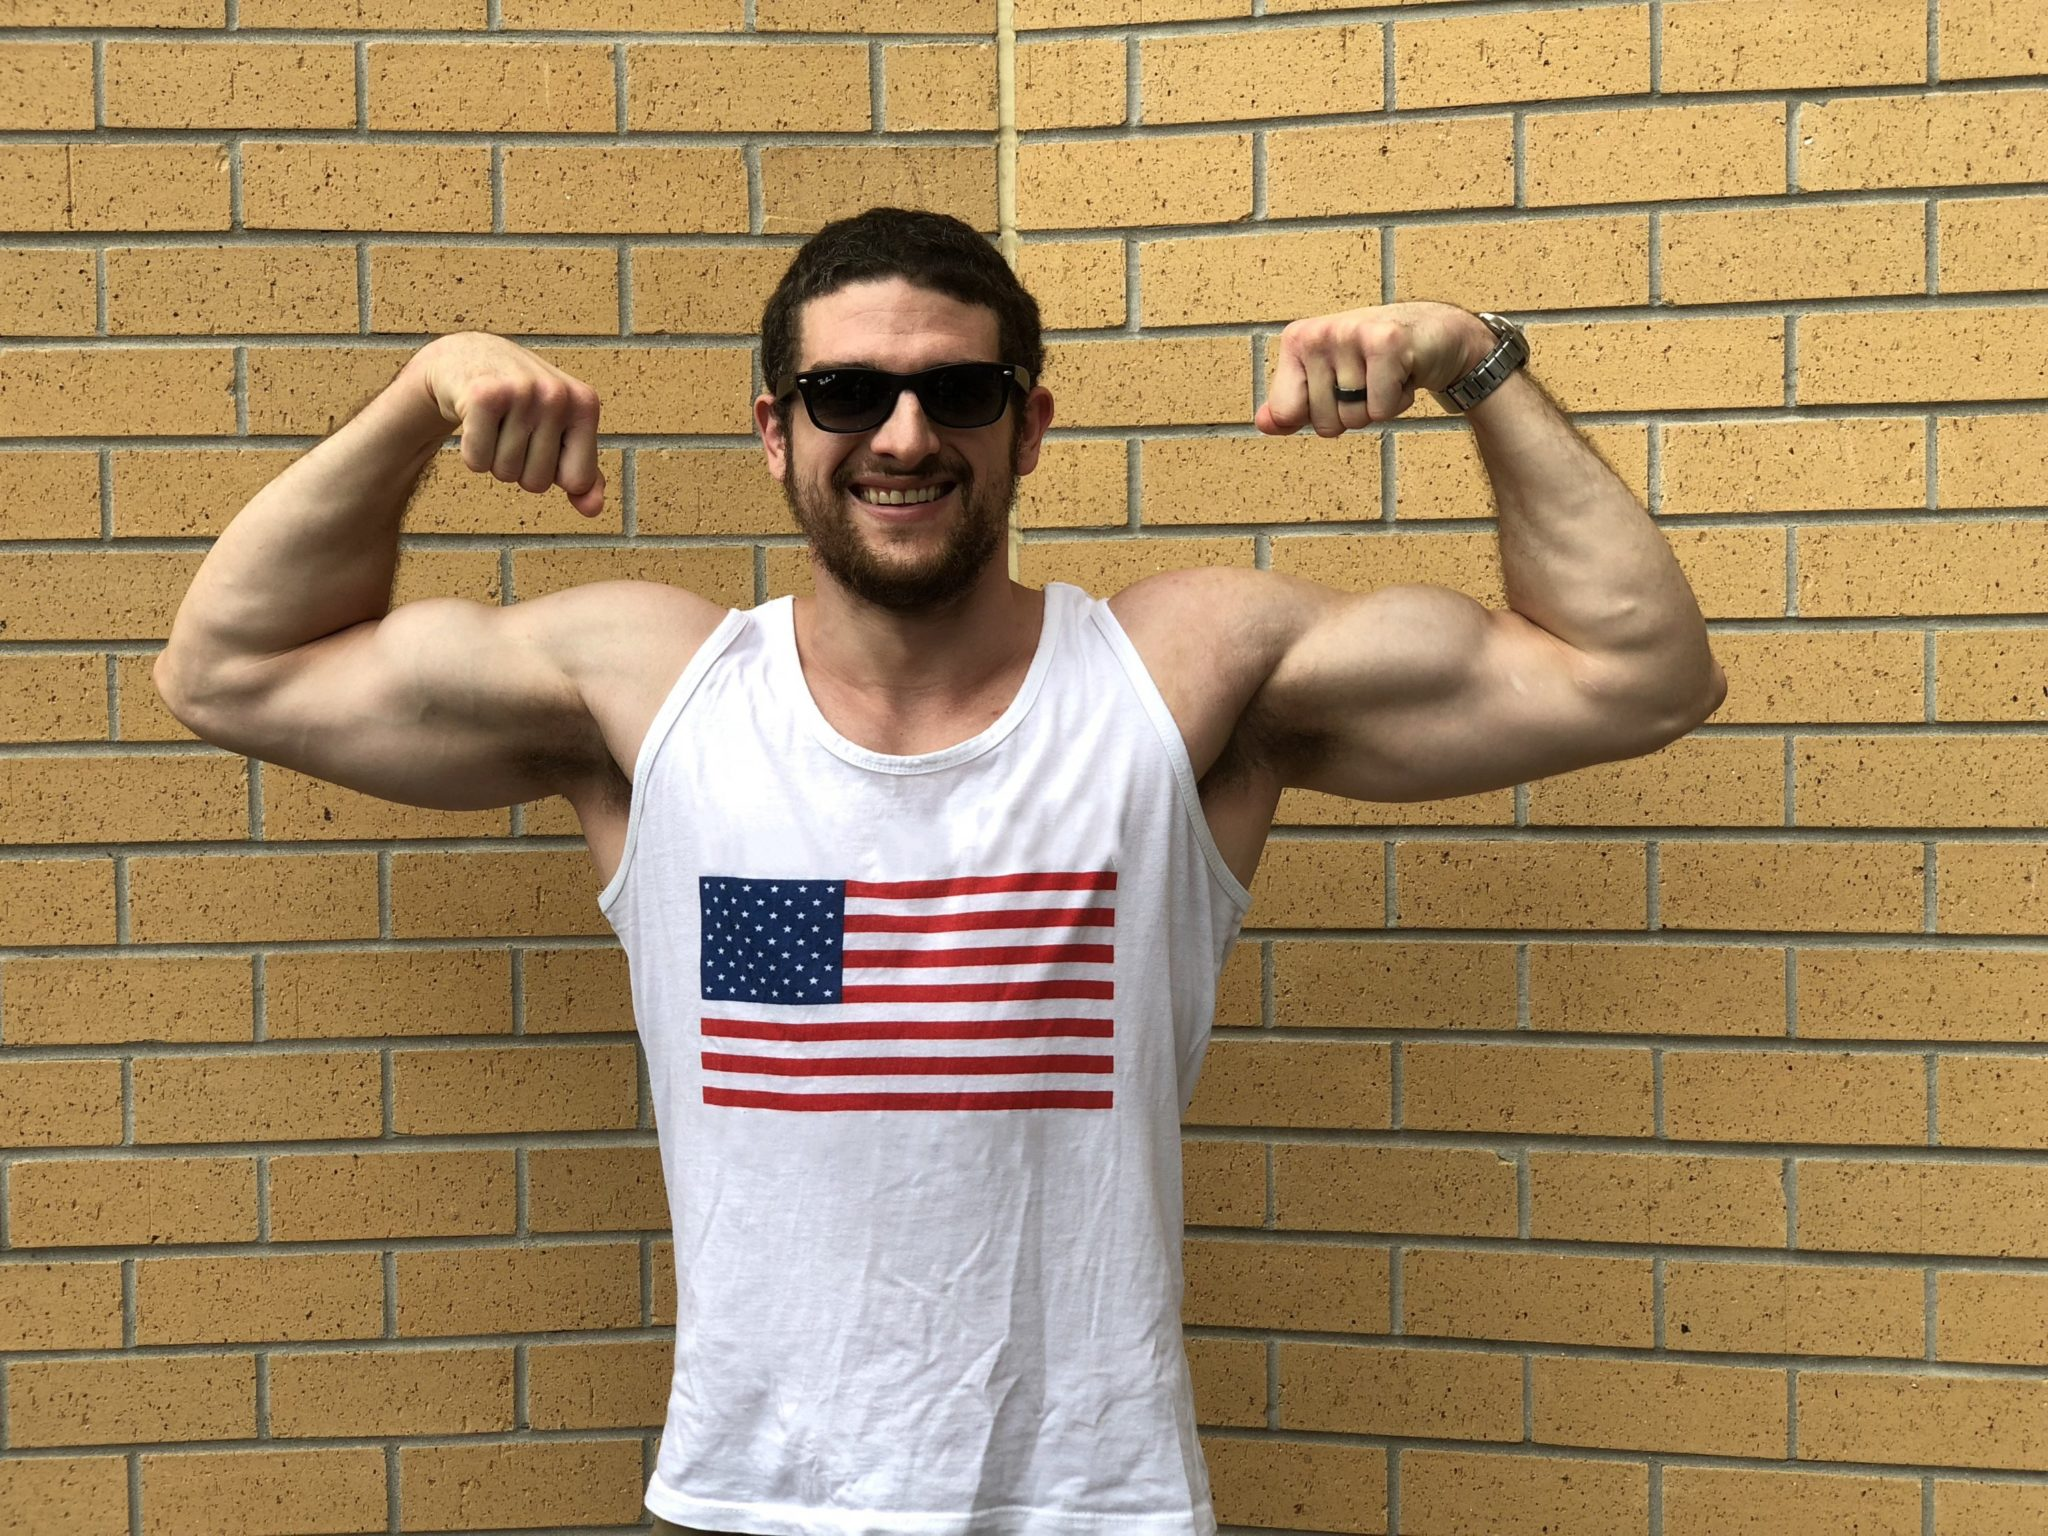 how i got this body lifting weights and using excel spreadsheets to track progress